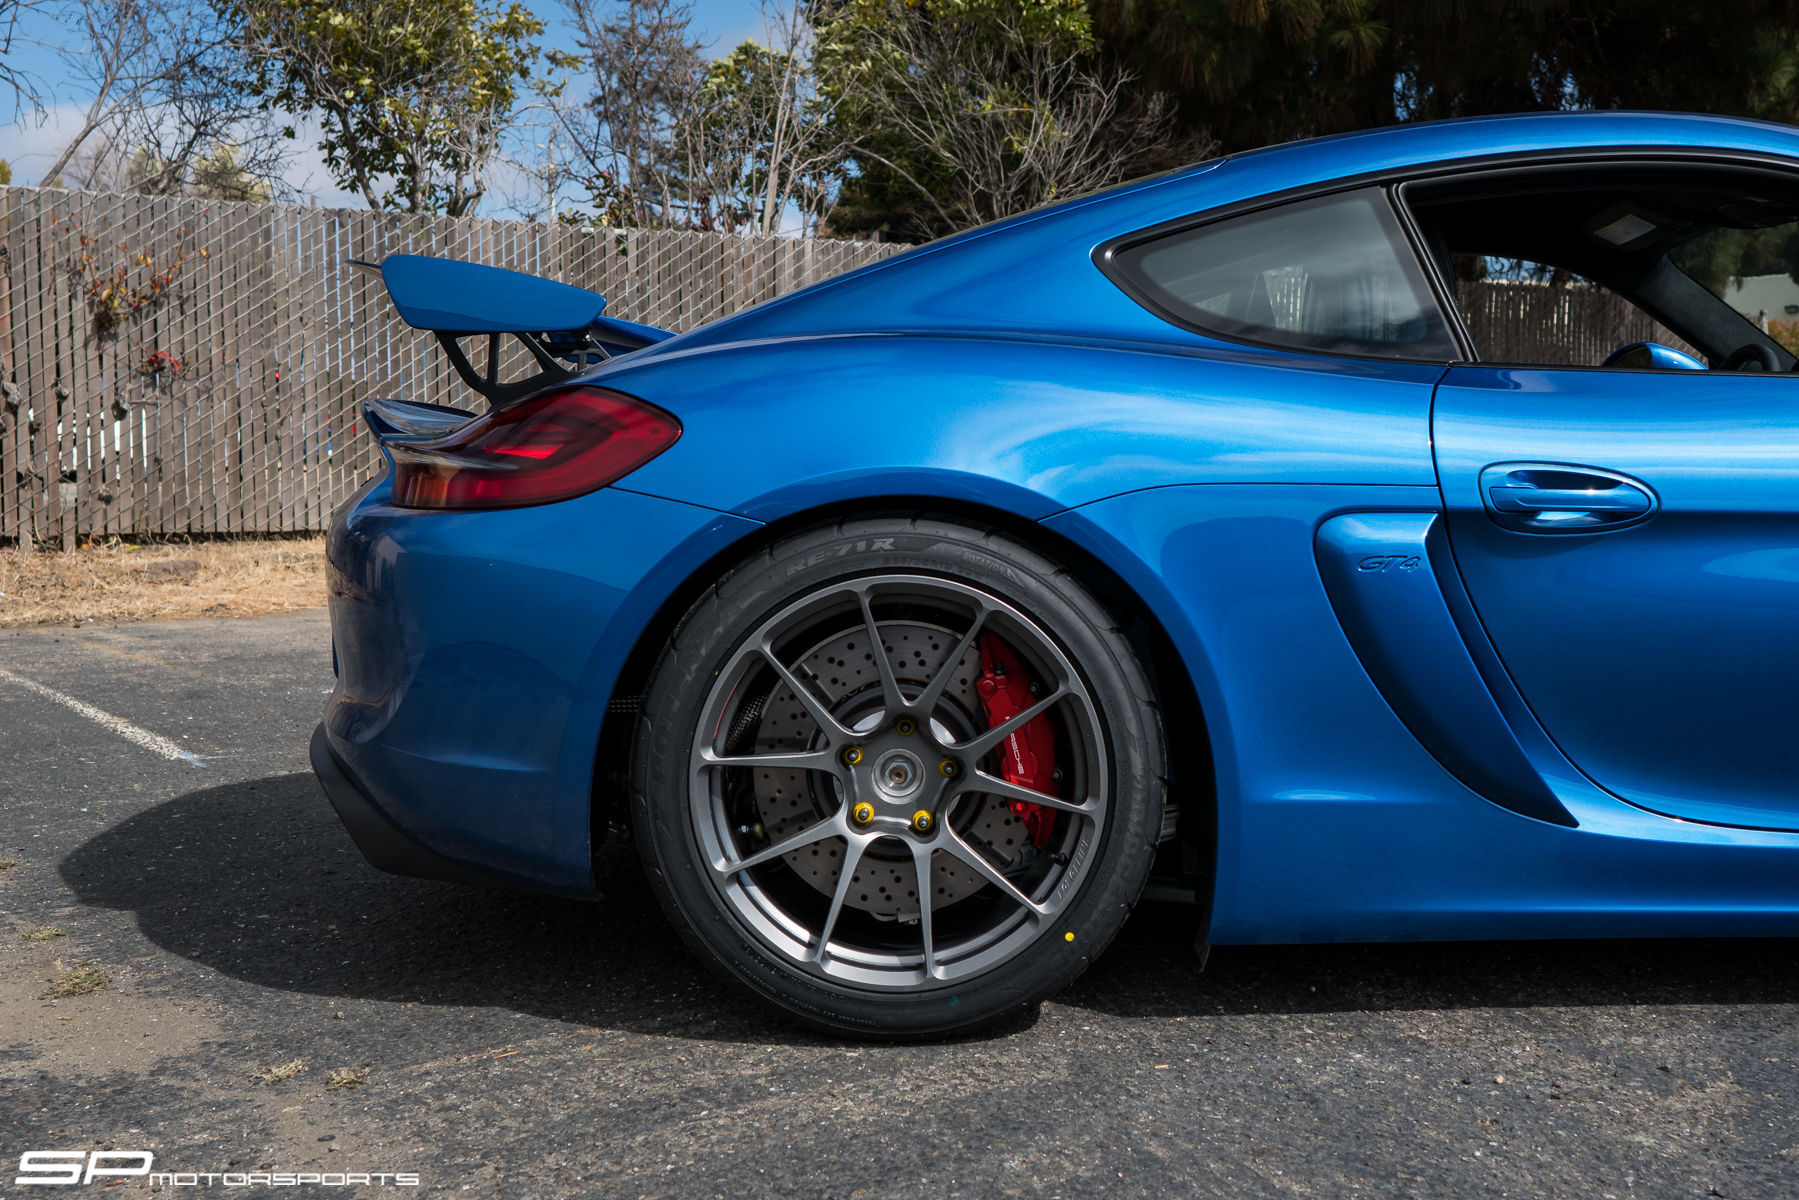 2016 Porsche Cayman | Sapphire Blue Porsche Cayman GT4 by SP Motorsports on Forgeline One Piece Forged Monoblock GS1R Wheels